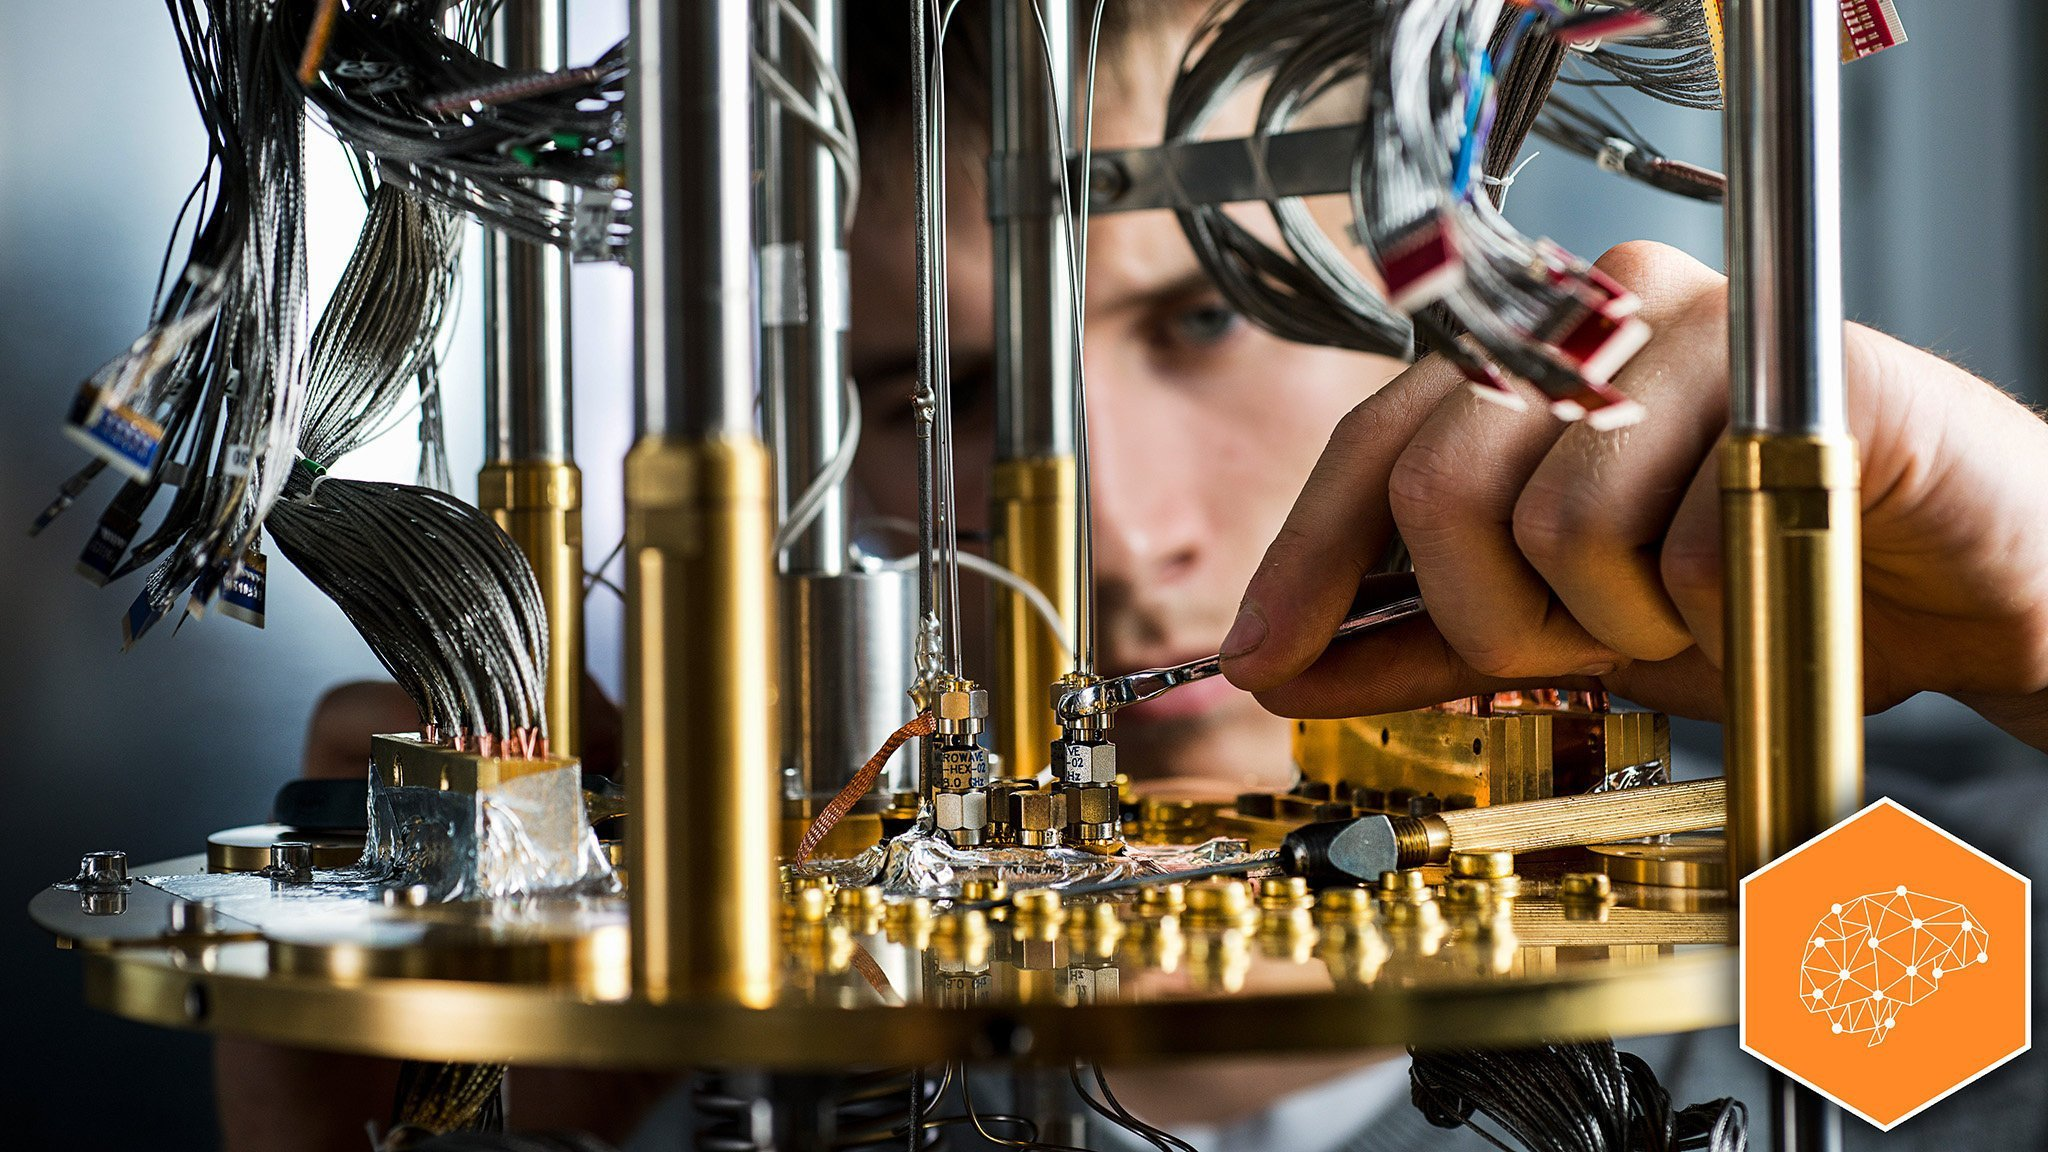 Early quantum computing investors see benefits | Financial Times